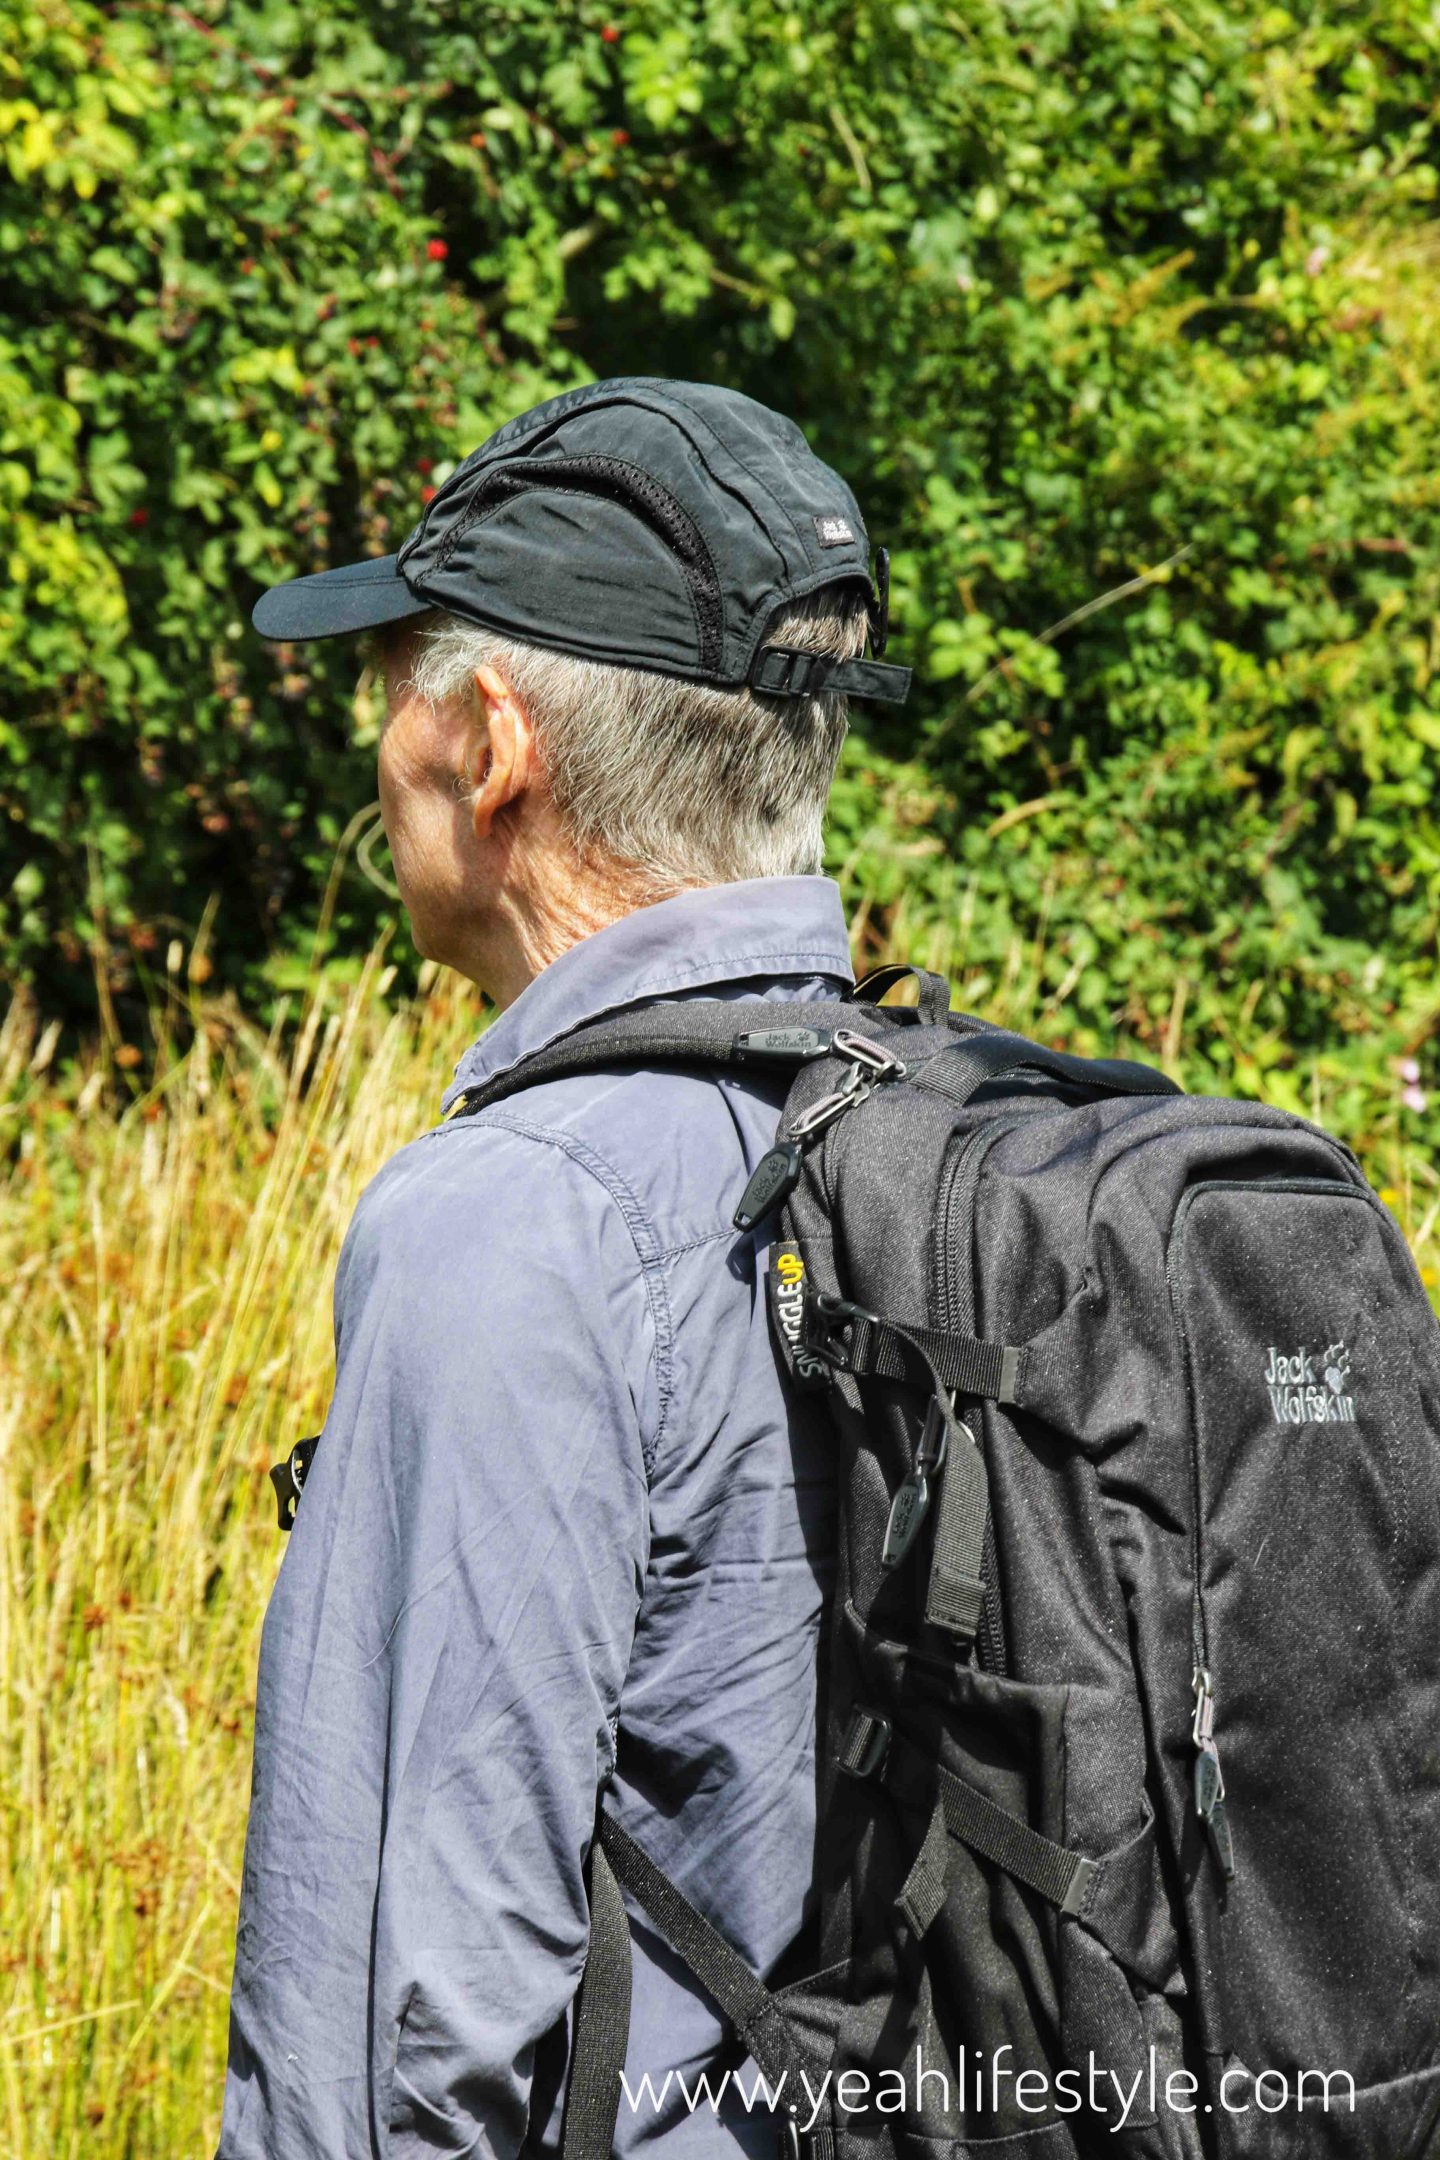 Simply-Hike-Jack-Wolfskin-Rucksack-Vent-Cap-Blogger-Review-Hiking-StokeonTrent